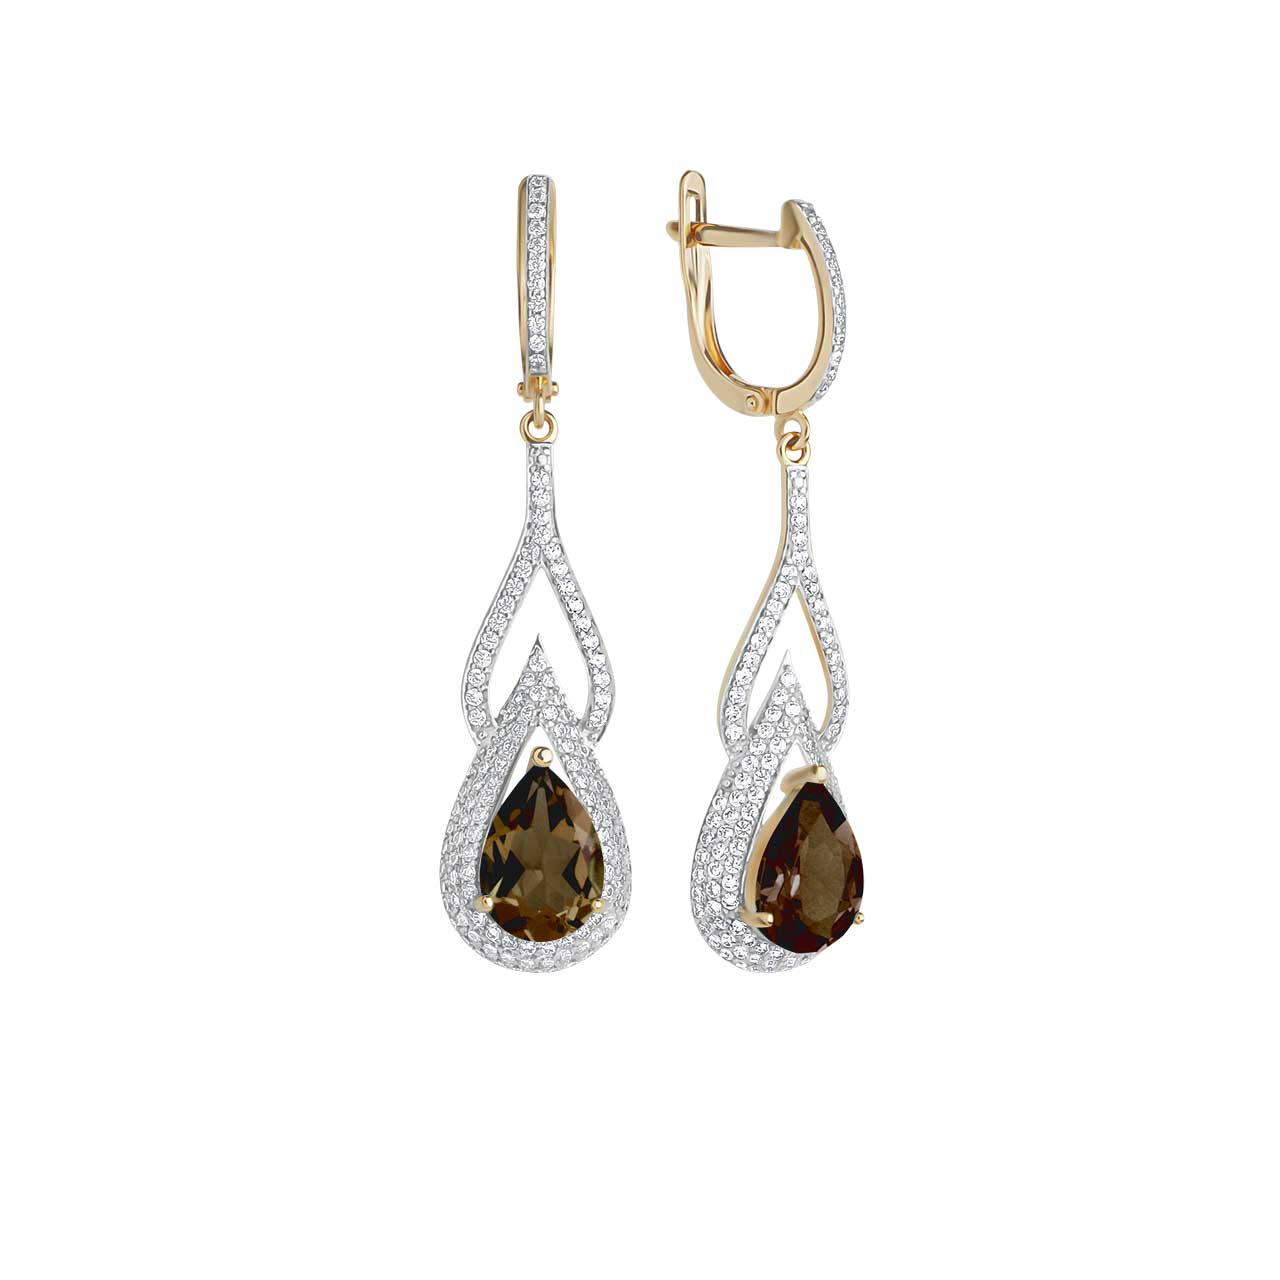 Teardrop Rauh Topaz and CZ Earrings